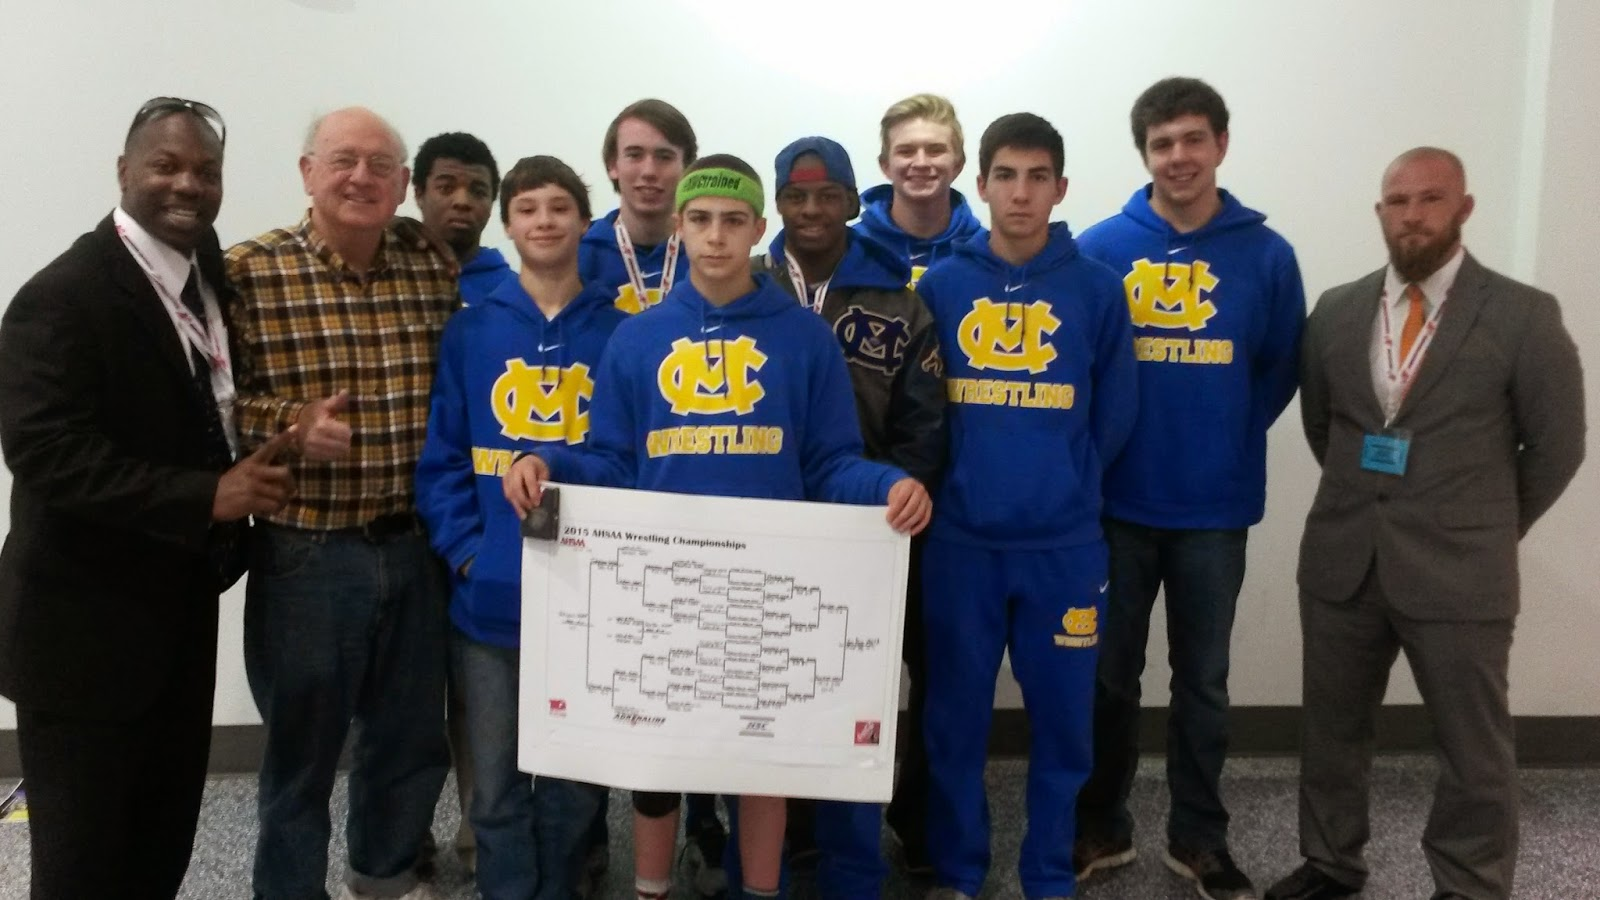 Catholic's Van Alst Claims Fourth Consecutive Wrestling State Championship 3